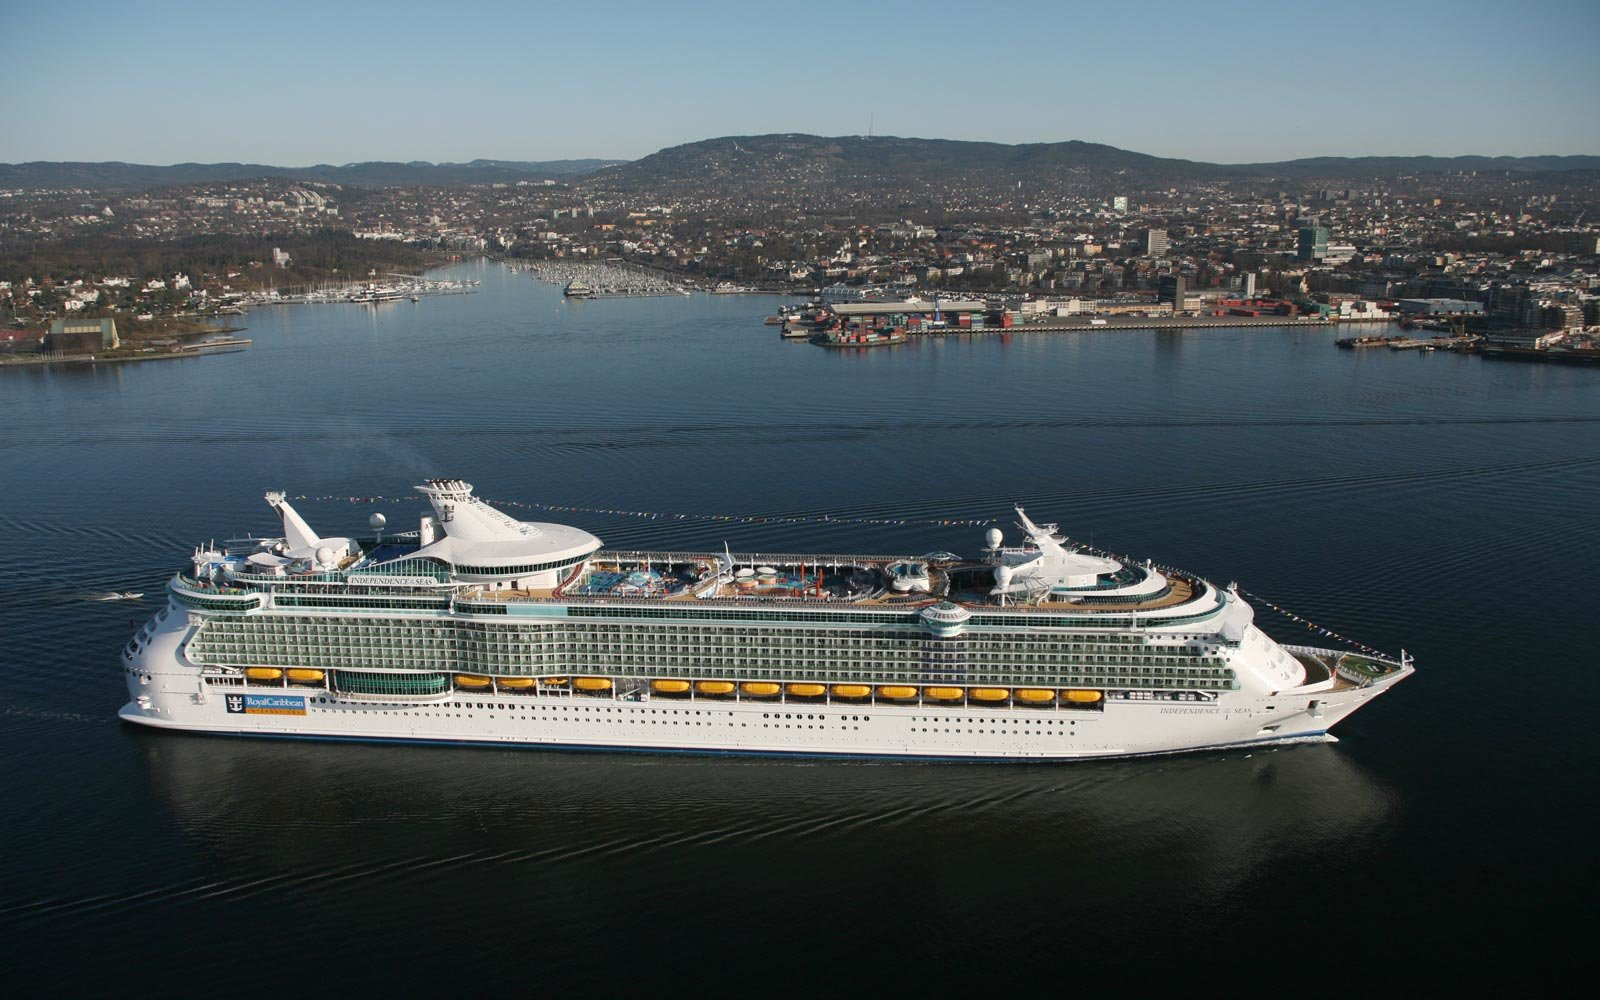 Five Things to Know About Royal Caribbean International's Independence of the Seas Cruise Ship